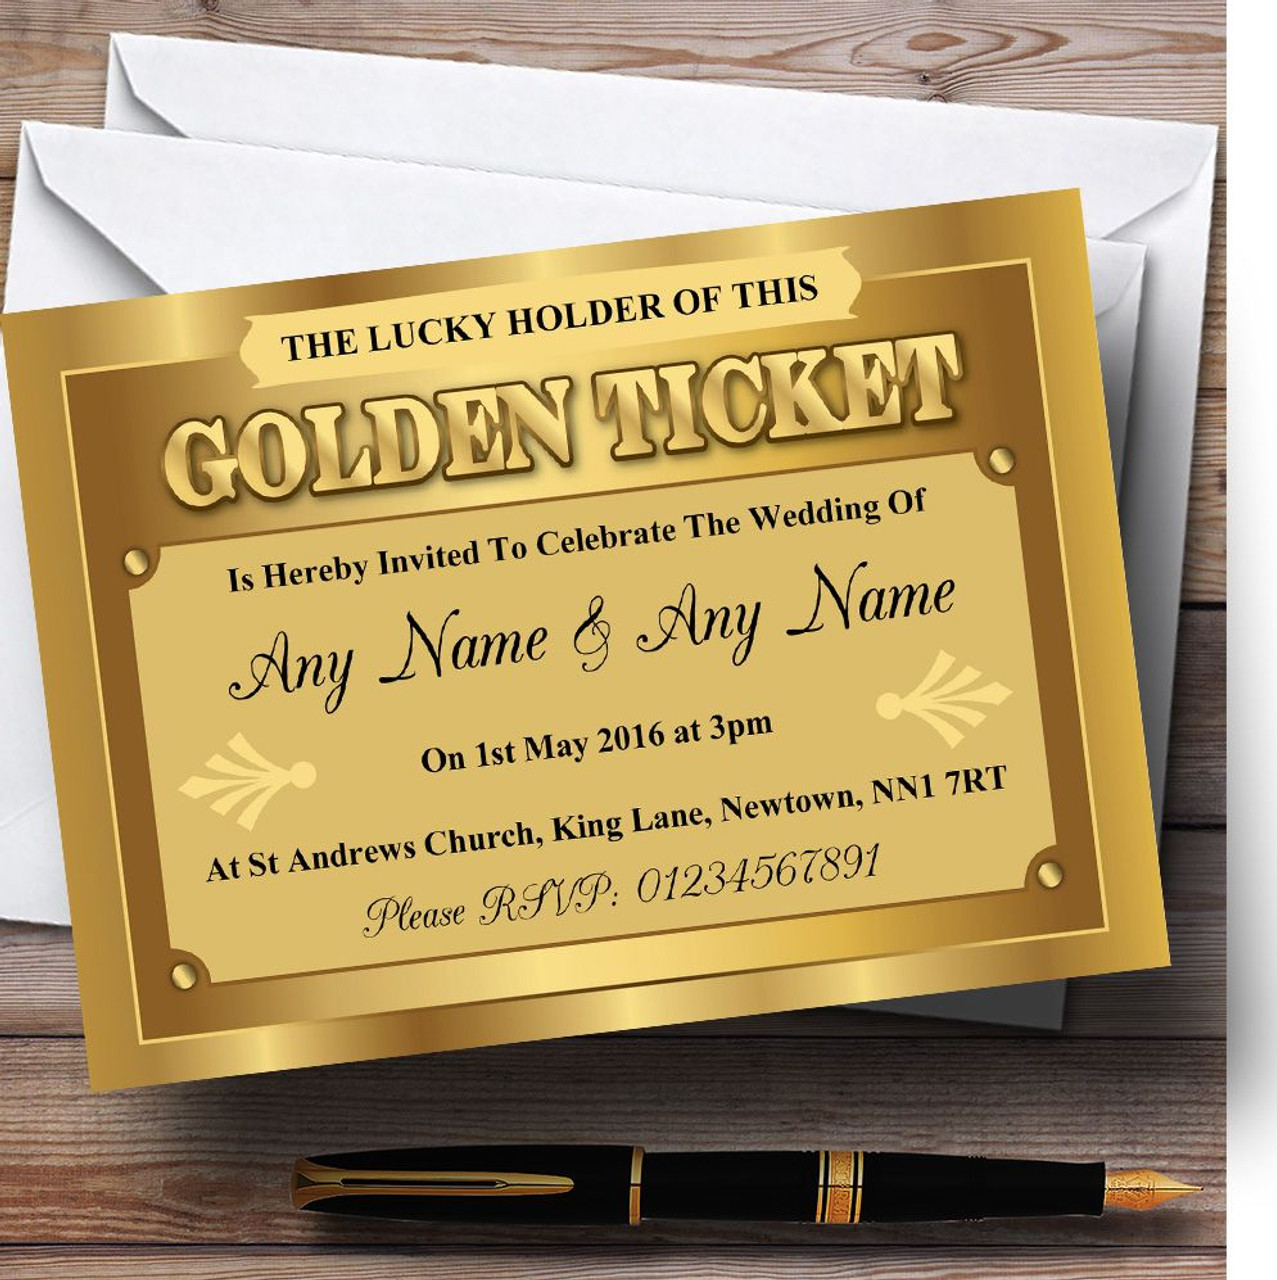 Golden Ticket Personalised Wedding Invitations - The Card Zoo